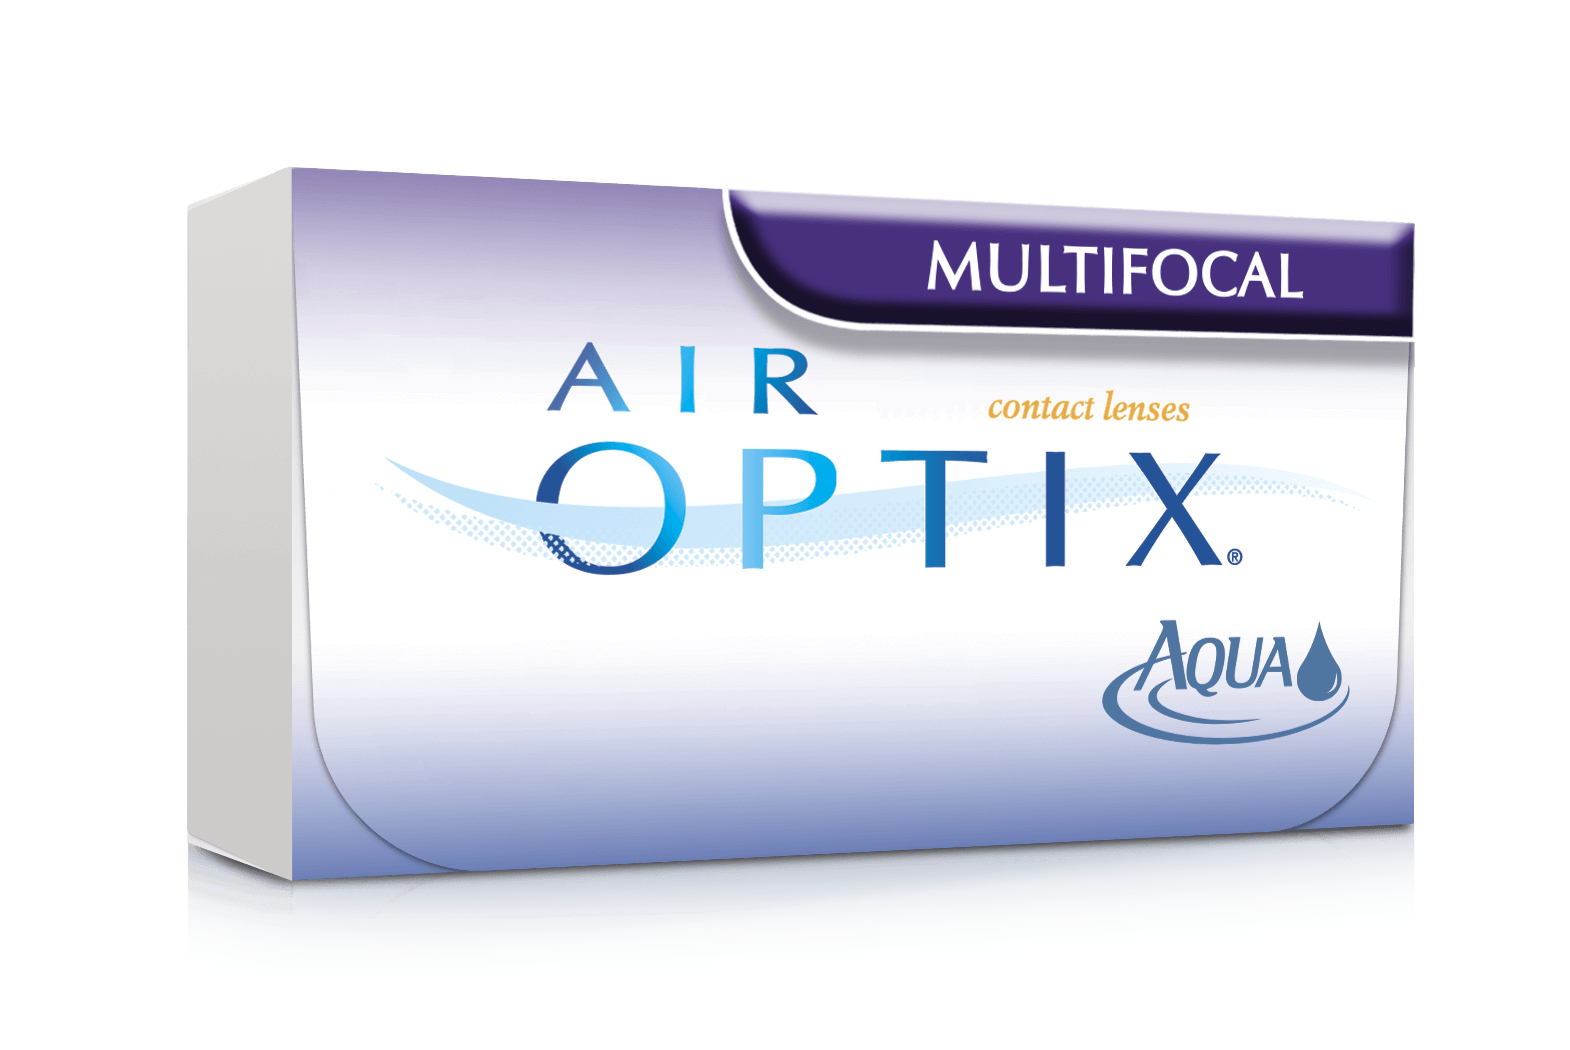 air-optix-aqua-multifocal